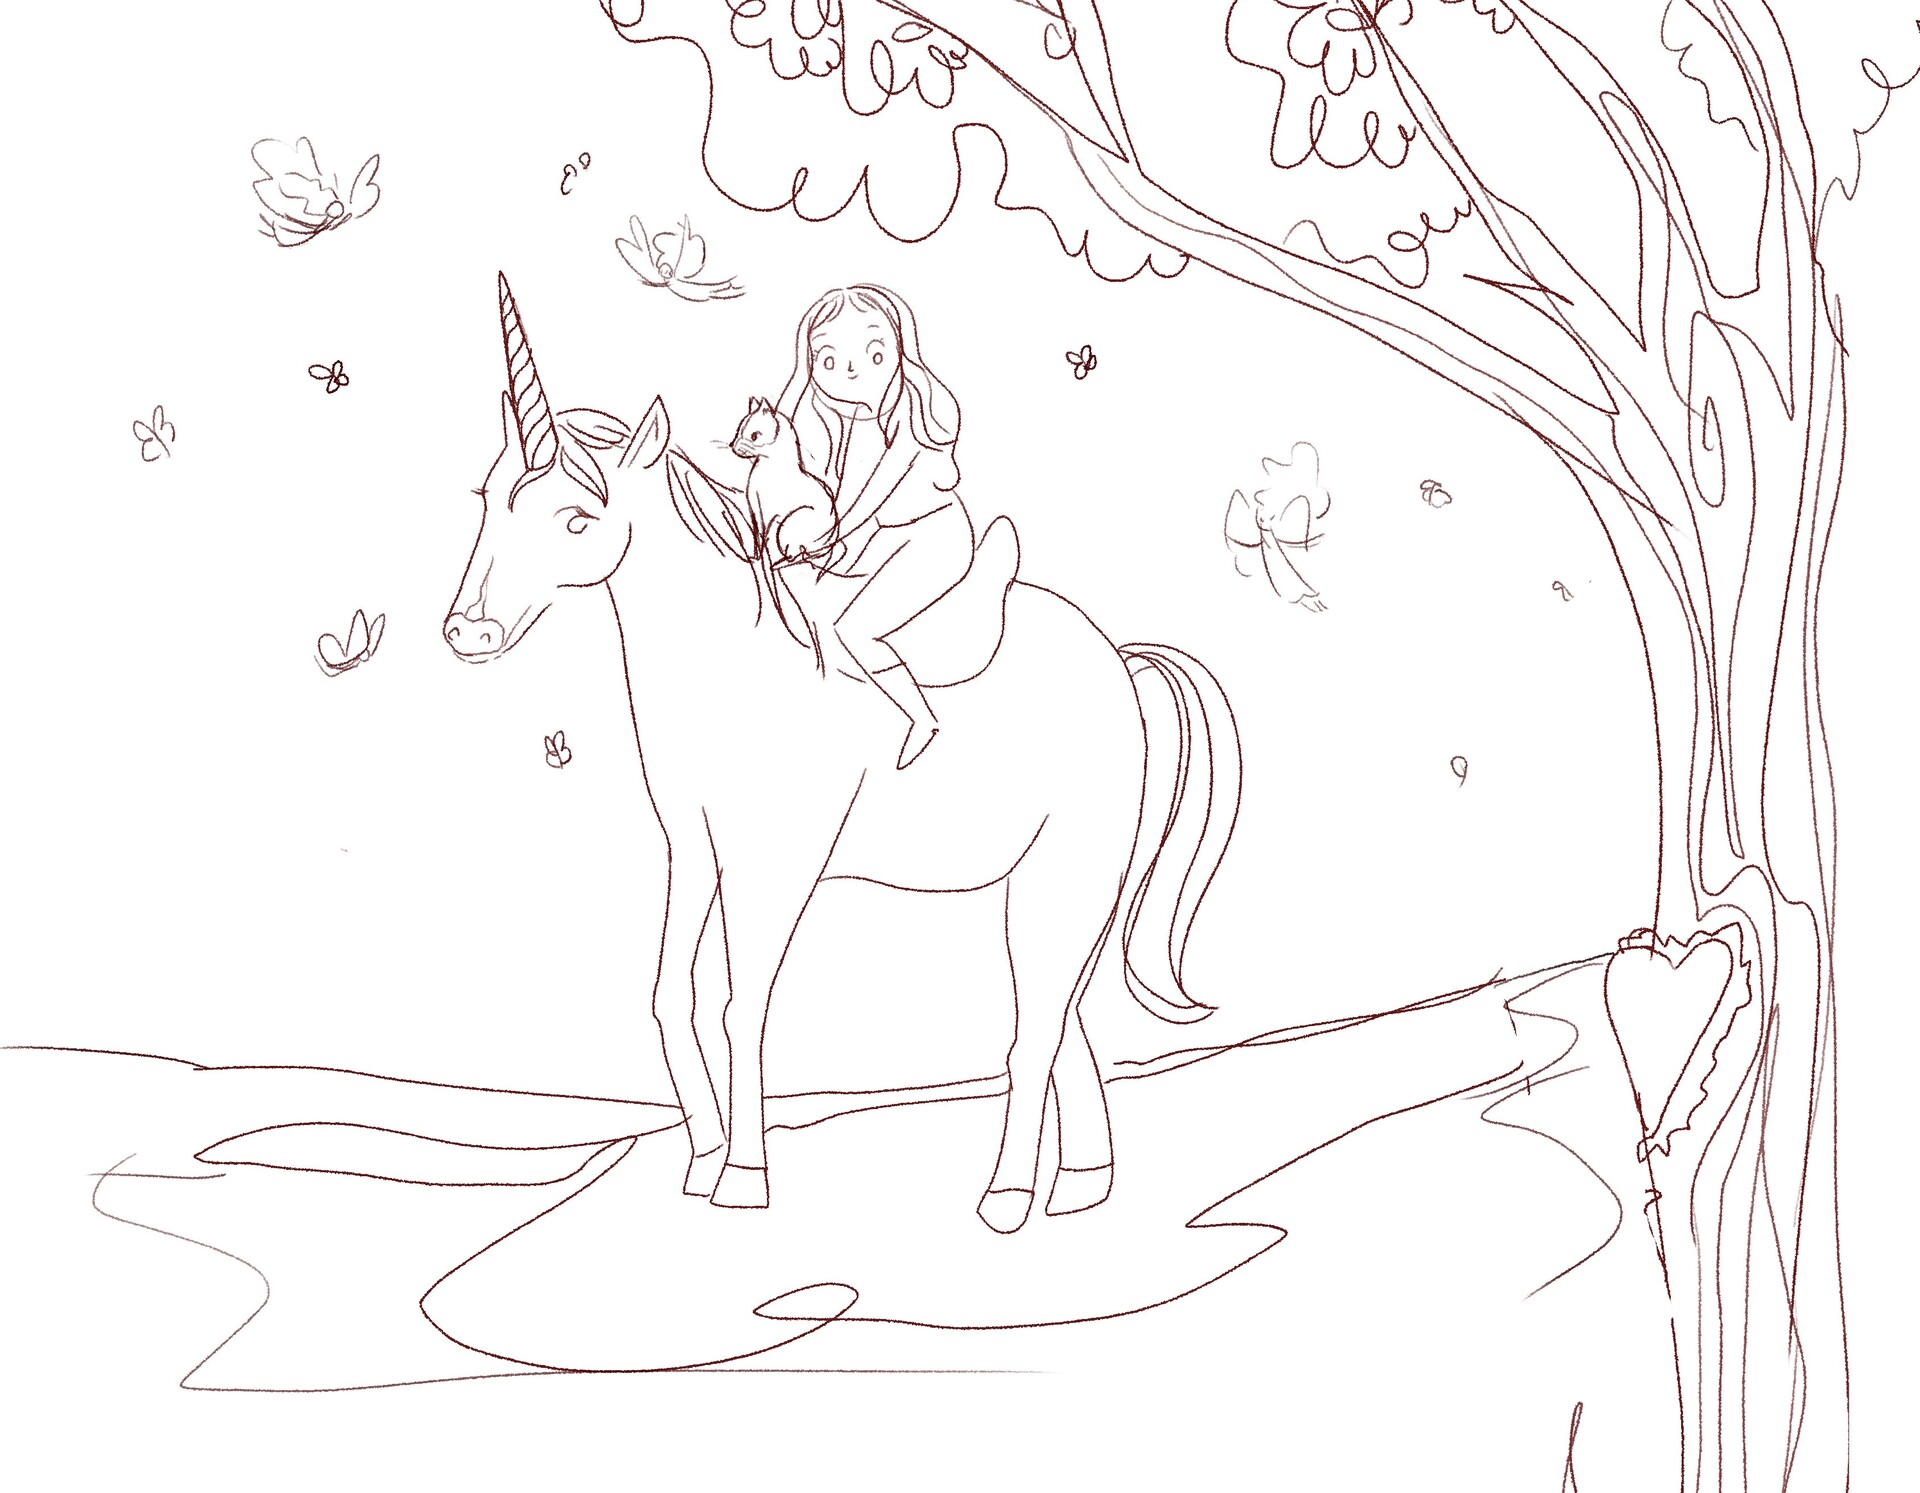 Character and composition sketch provided by client  (Credit: Elettra Cudignotto)